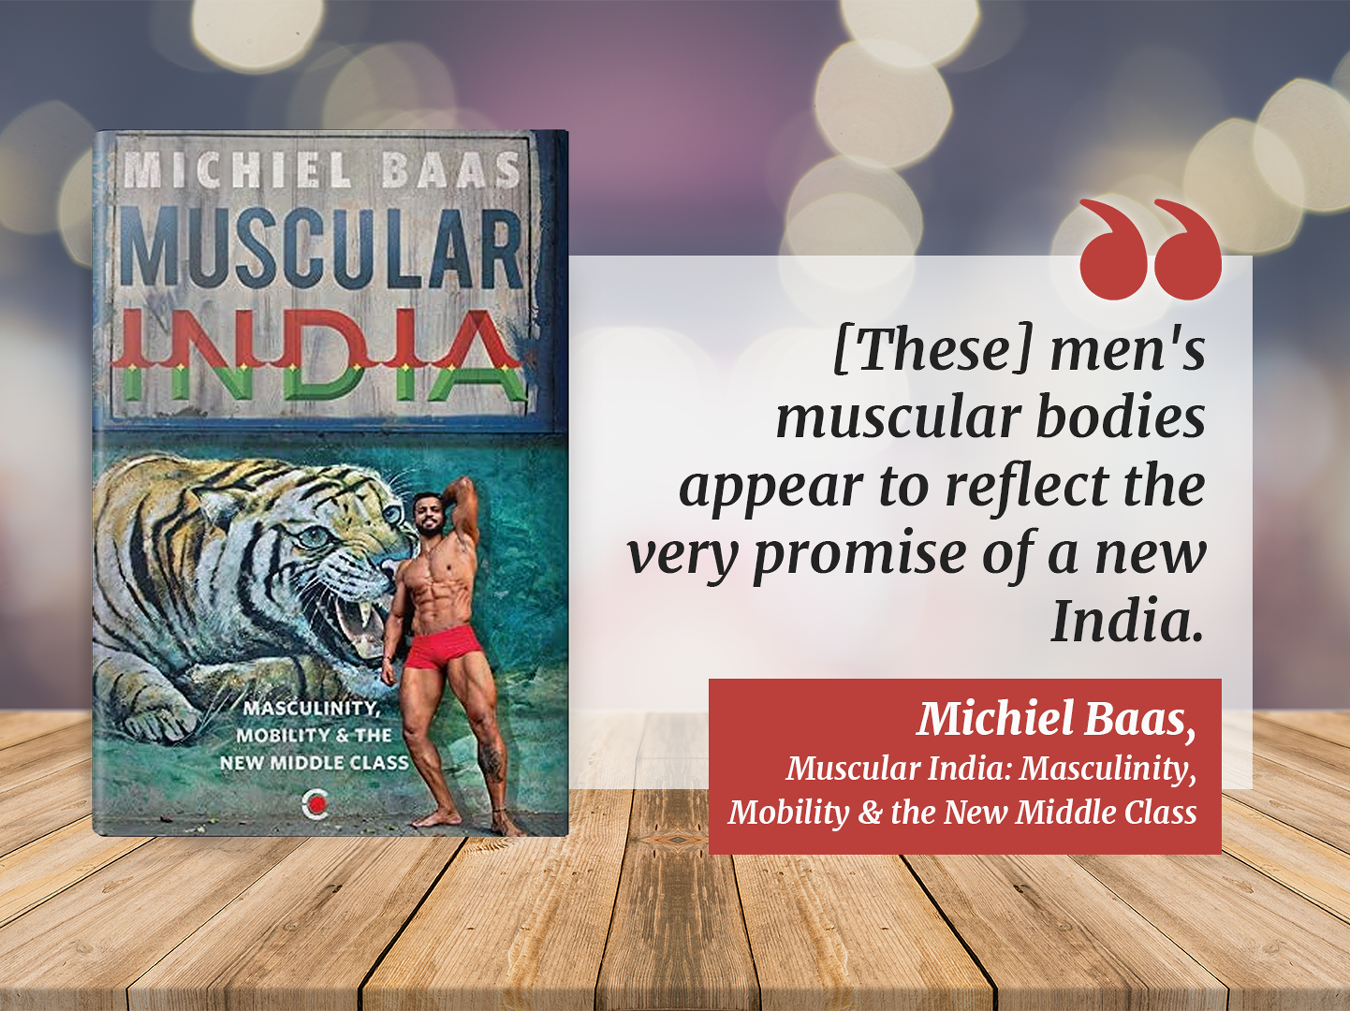 Lessons from Books: A Fascinating Study on How Men's Bodies are Transforming inside A New India